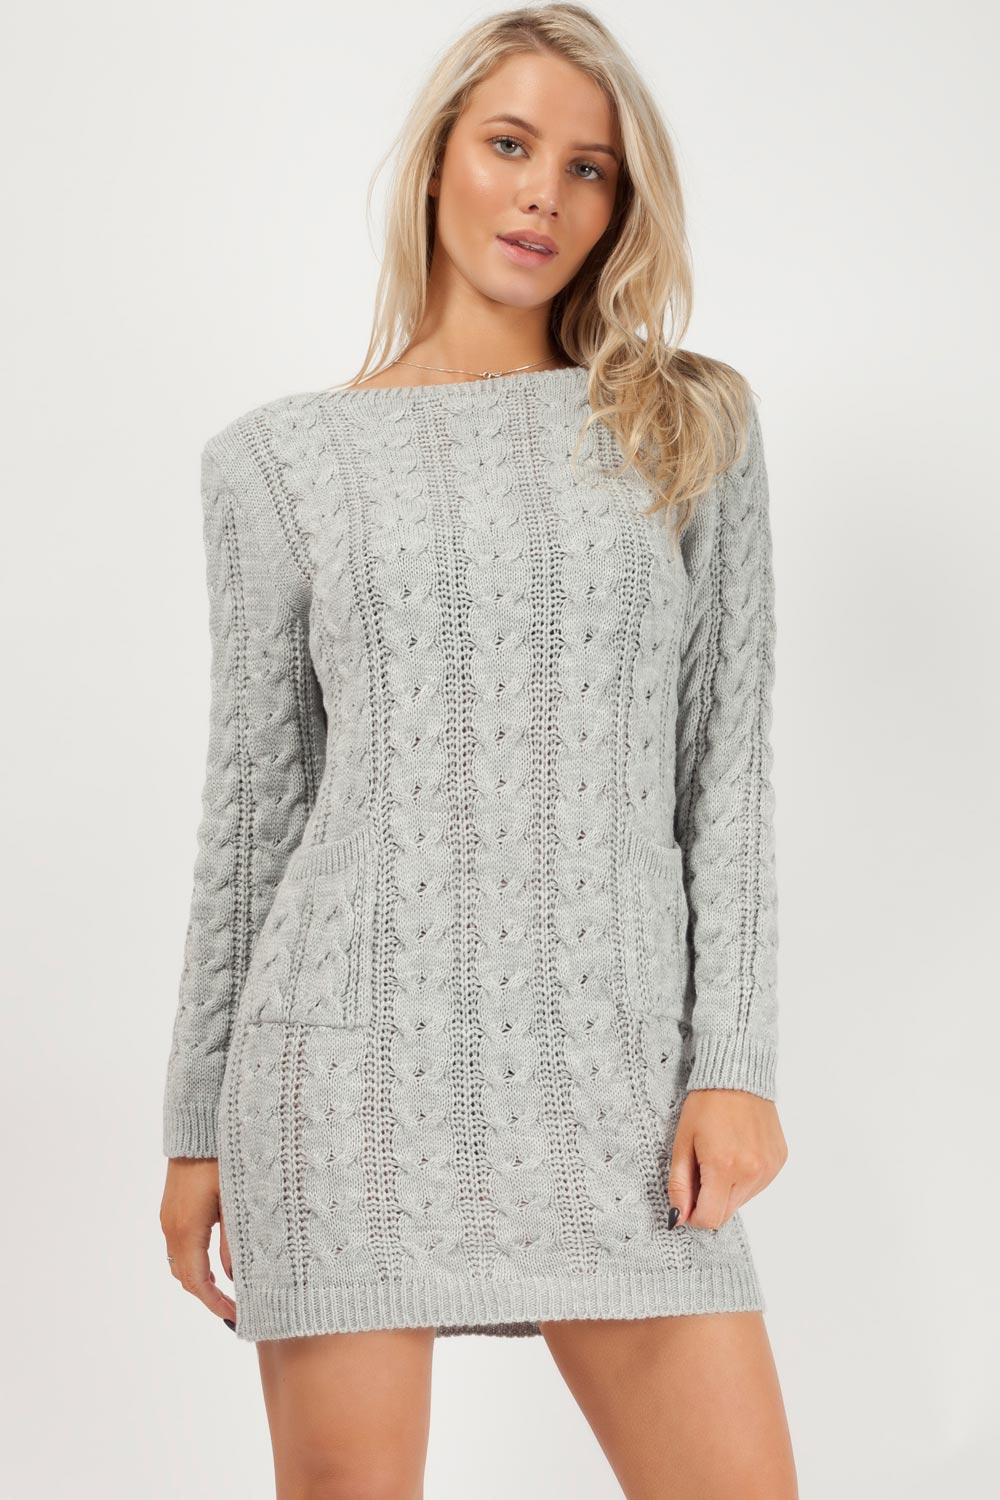 grey jumper cable knit womens